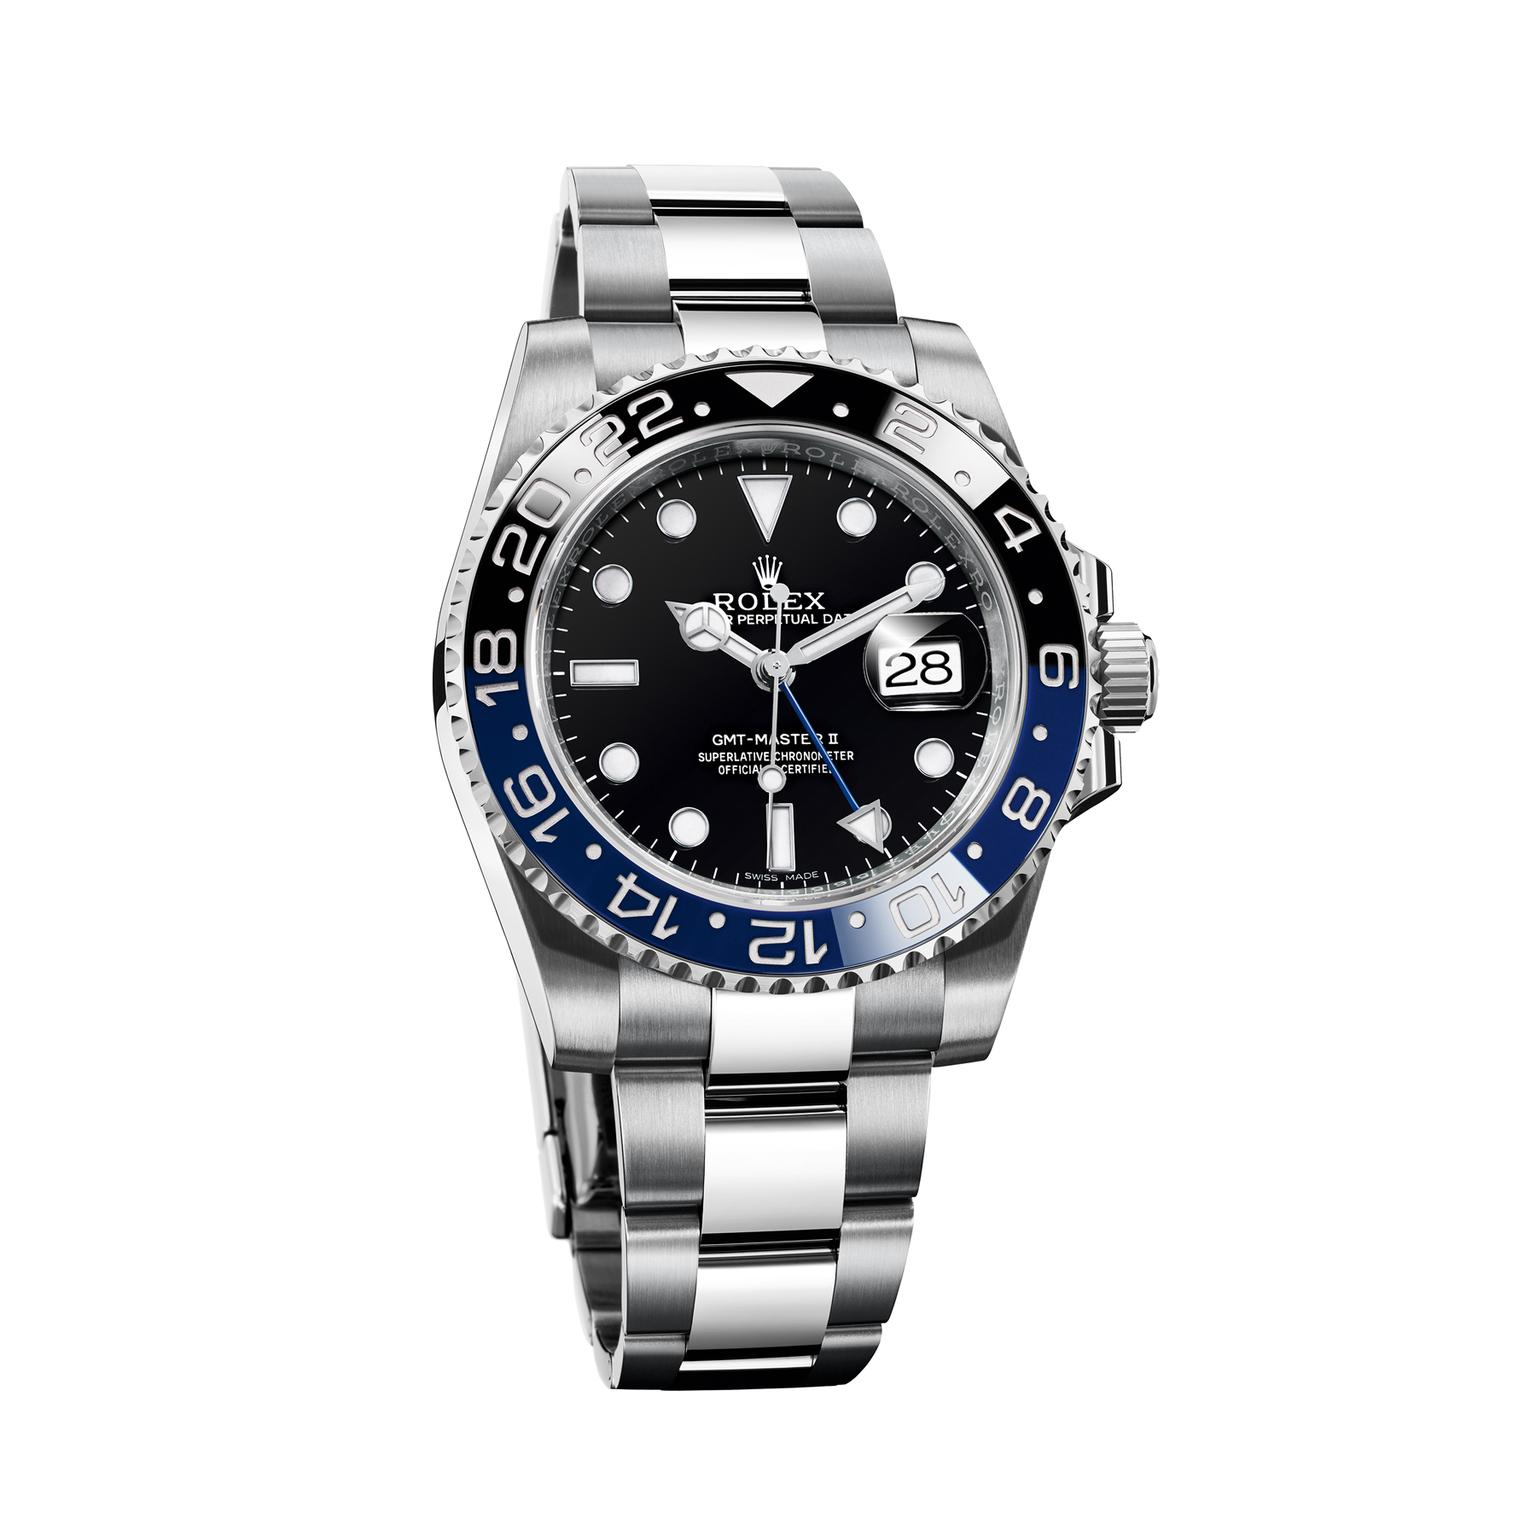 Rolex GMT-Master II 40mm watch in steel